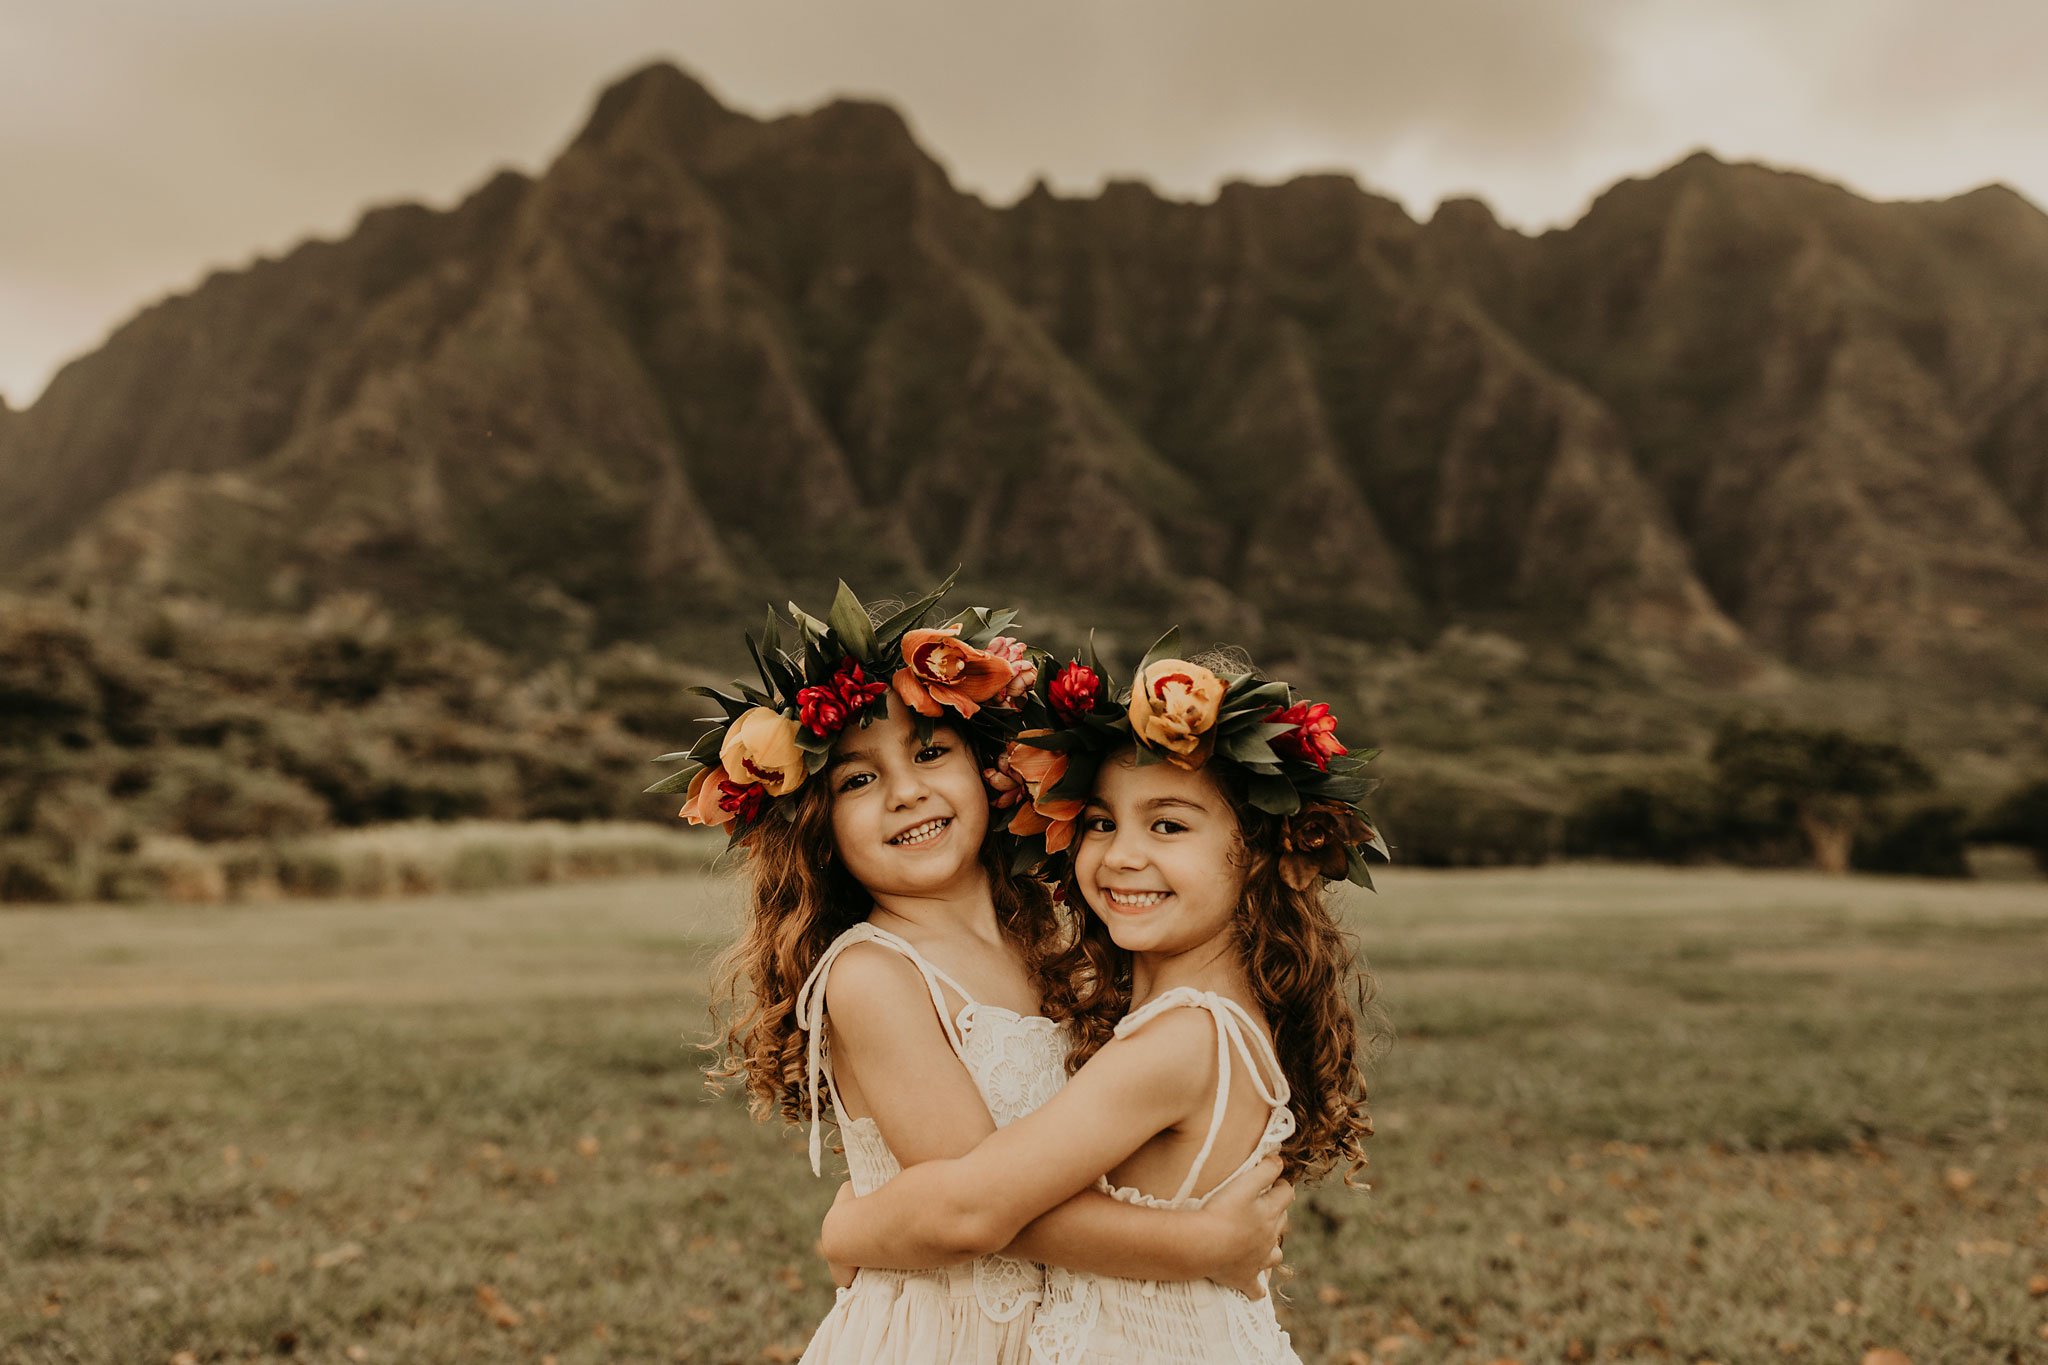 oahu-hawaoo-family-photos-photographer-photography-09.jpg